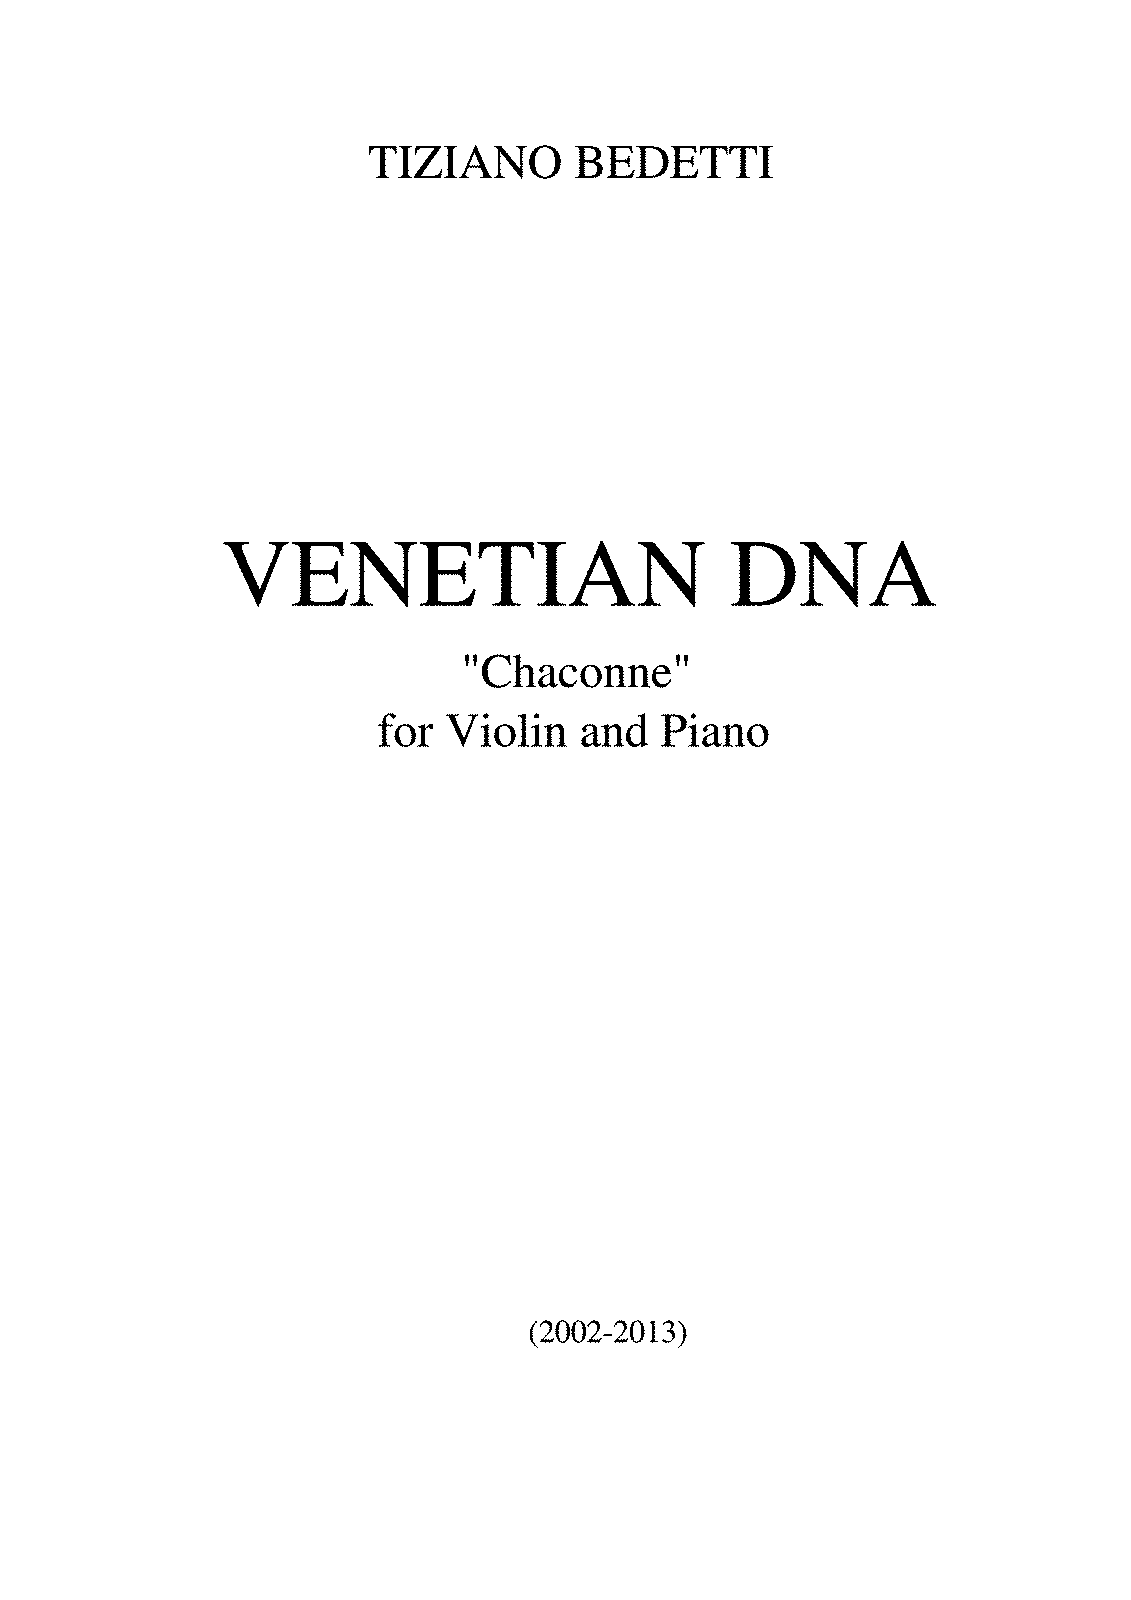 PMLP207566-PMLUS00005-Venetian DNA for violin and piano - full score.pdf